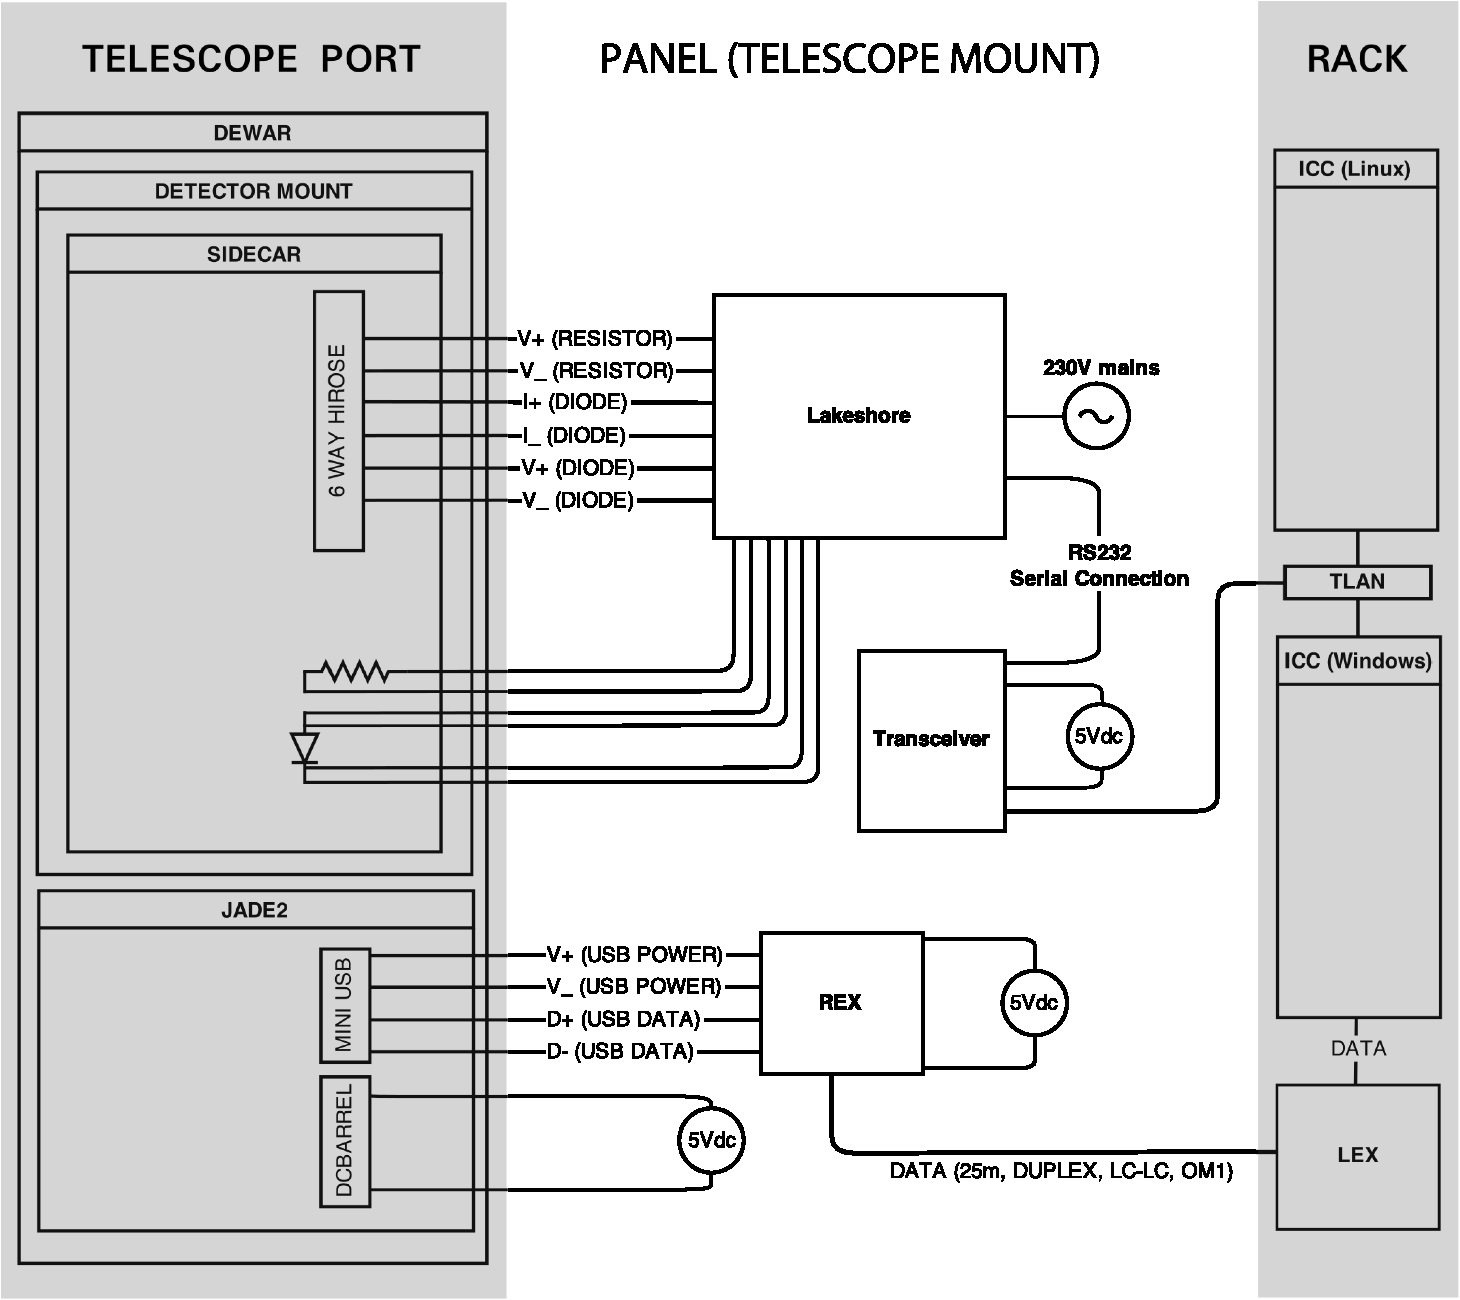 Ioi A Near Infrared Camera For The Liverpool Telescope Ir Remote Extender Circuit Wiring Schematic Rex And Lex Refer To Local Fiber Optic Units Respectively Tlan Refers Ethernet Network